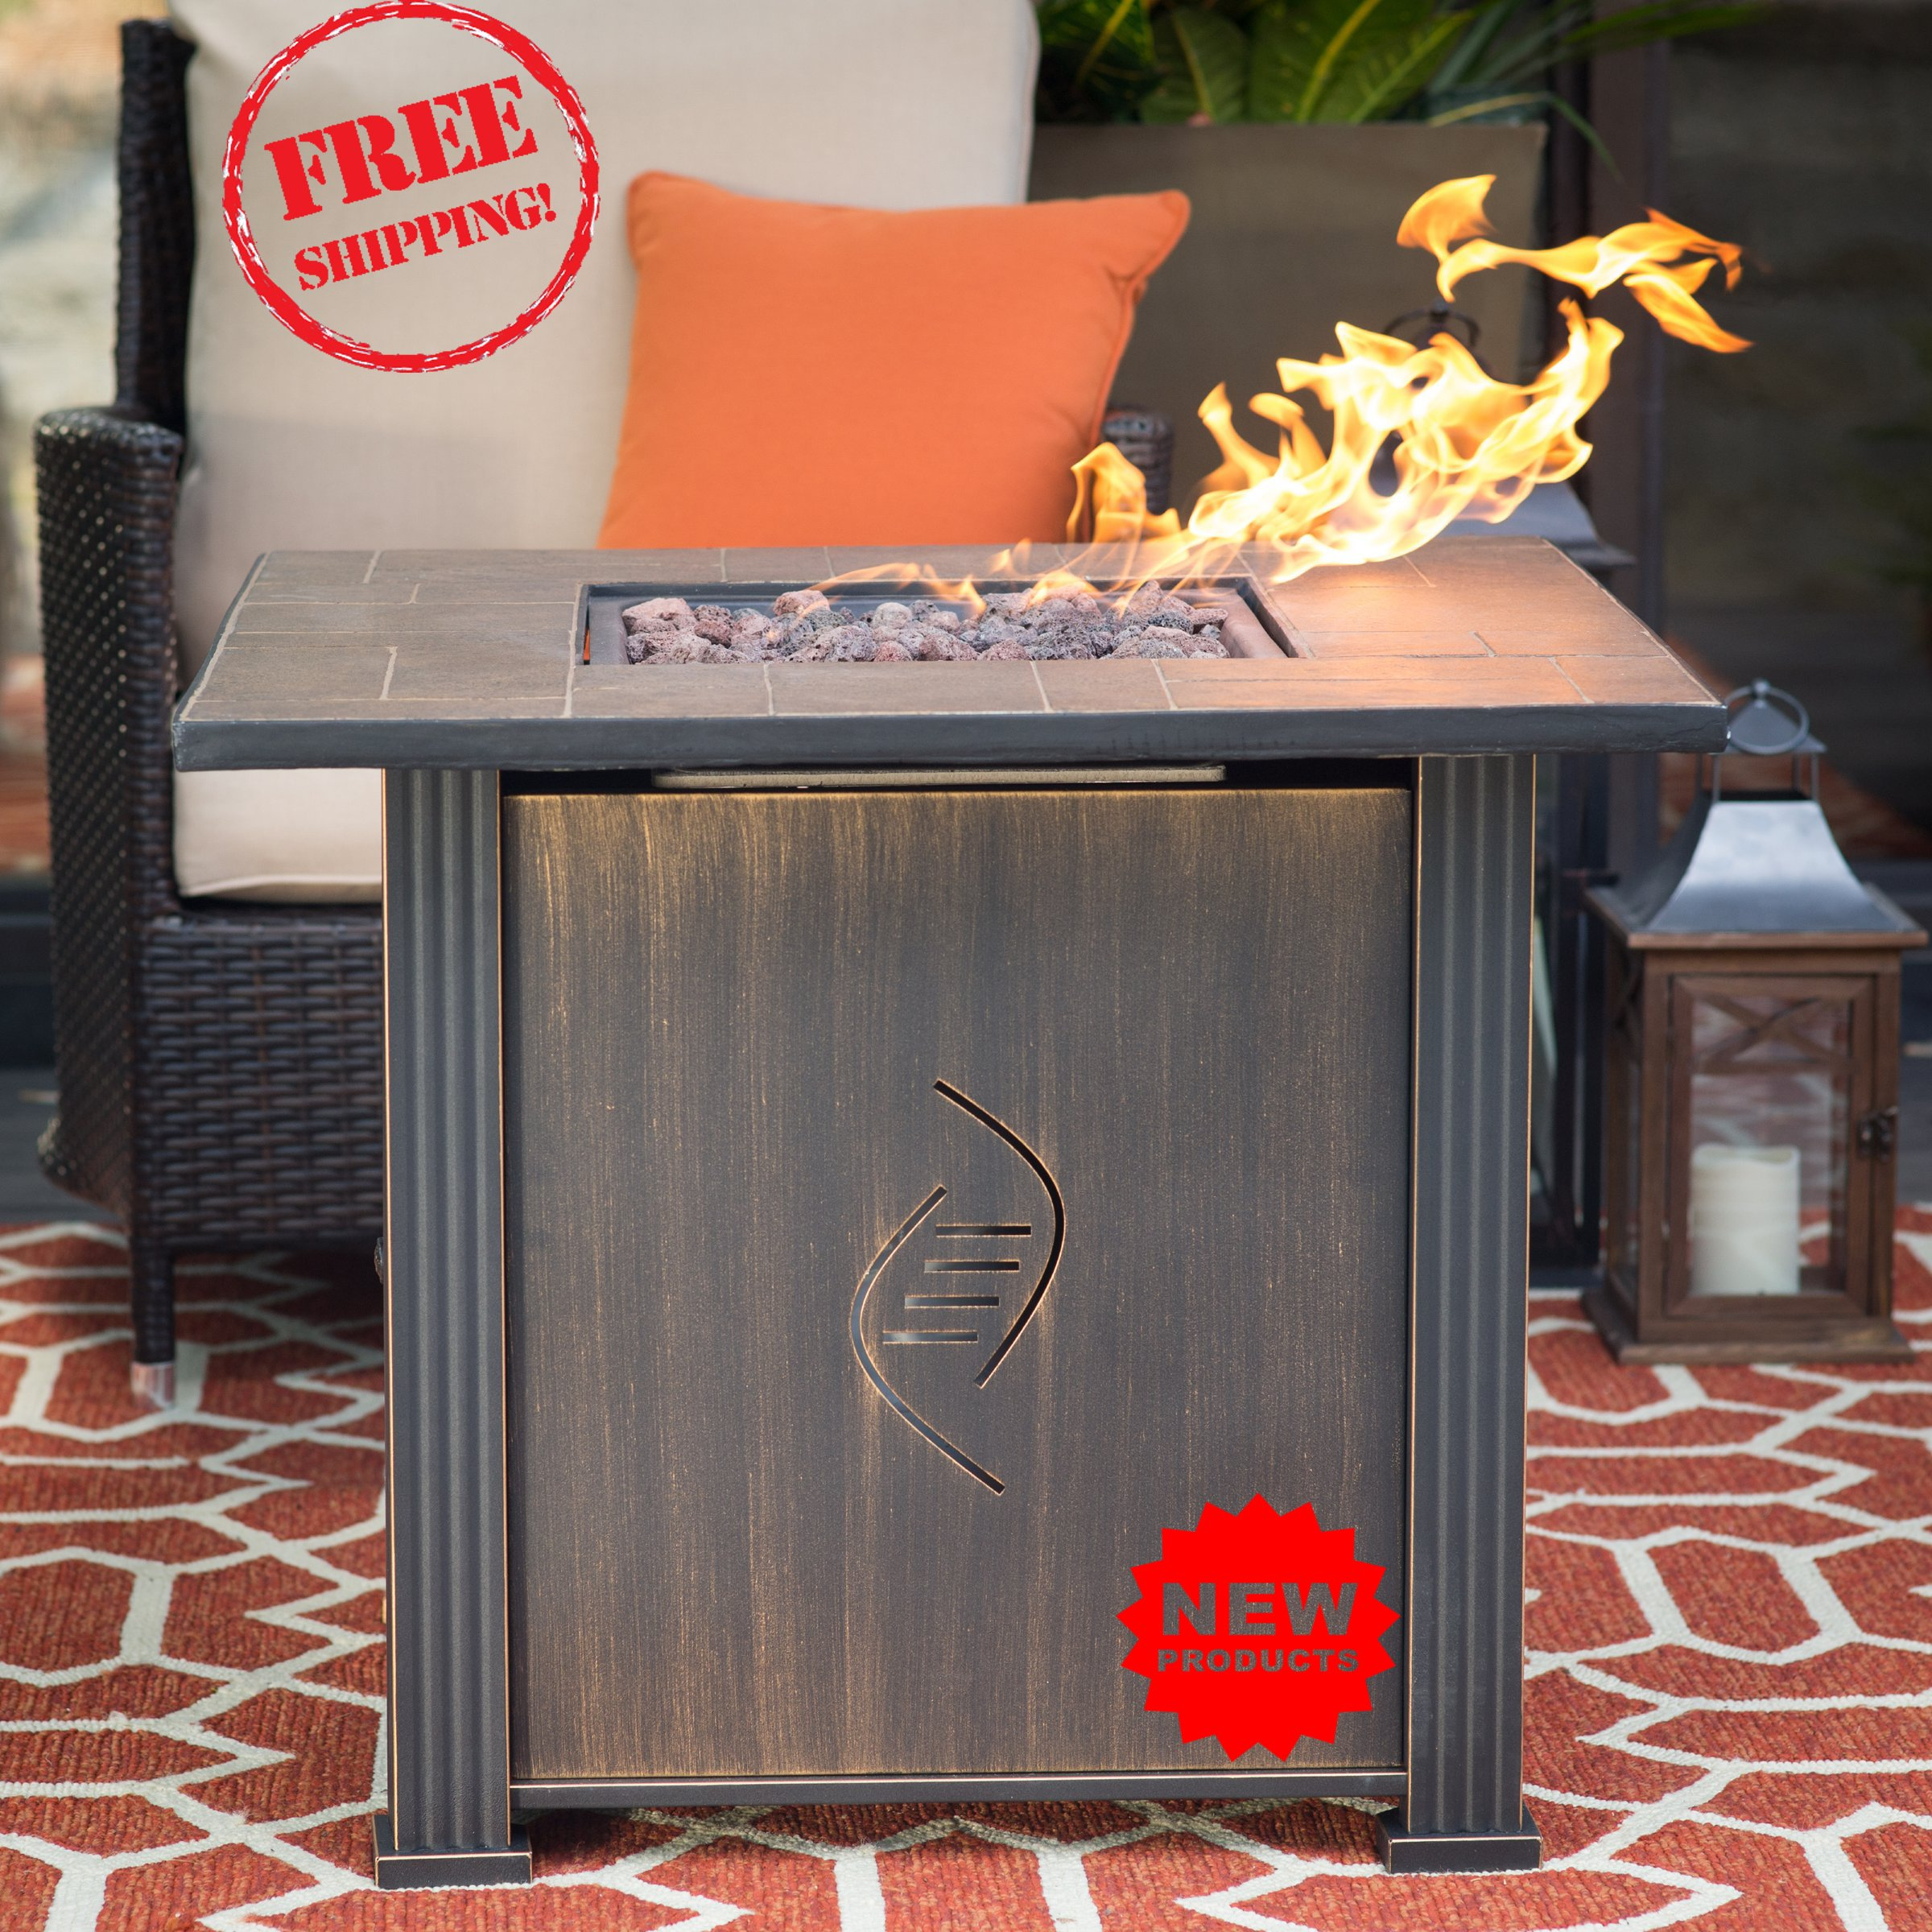 Fire PitsOutdoor Fireplace, Propane Gas and Outdoor Fireplace kits, heater for dining outdoors, Sturdy steel - easy to use, Heating power: up to 50,000 BTUs